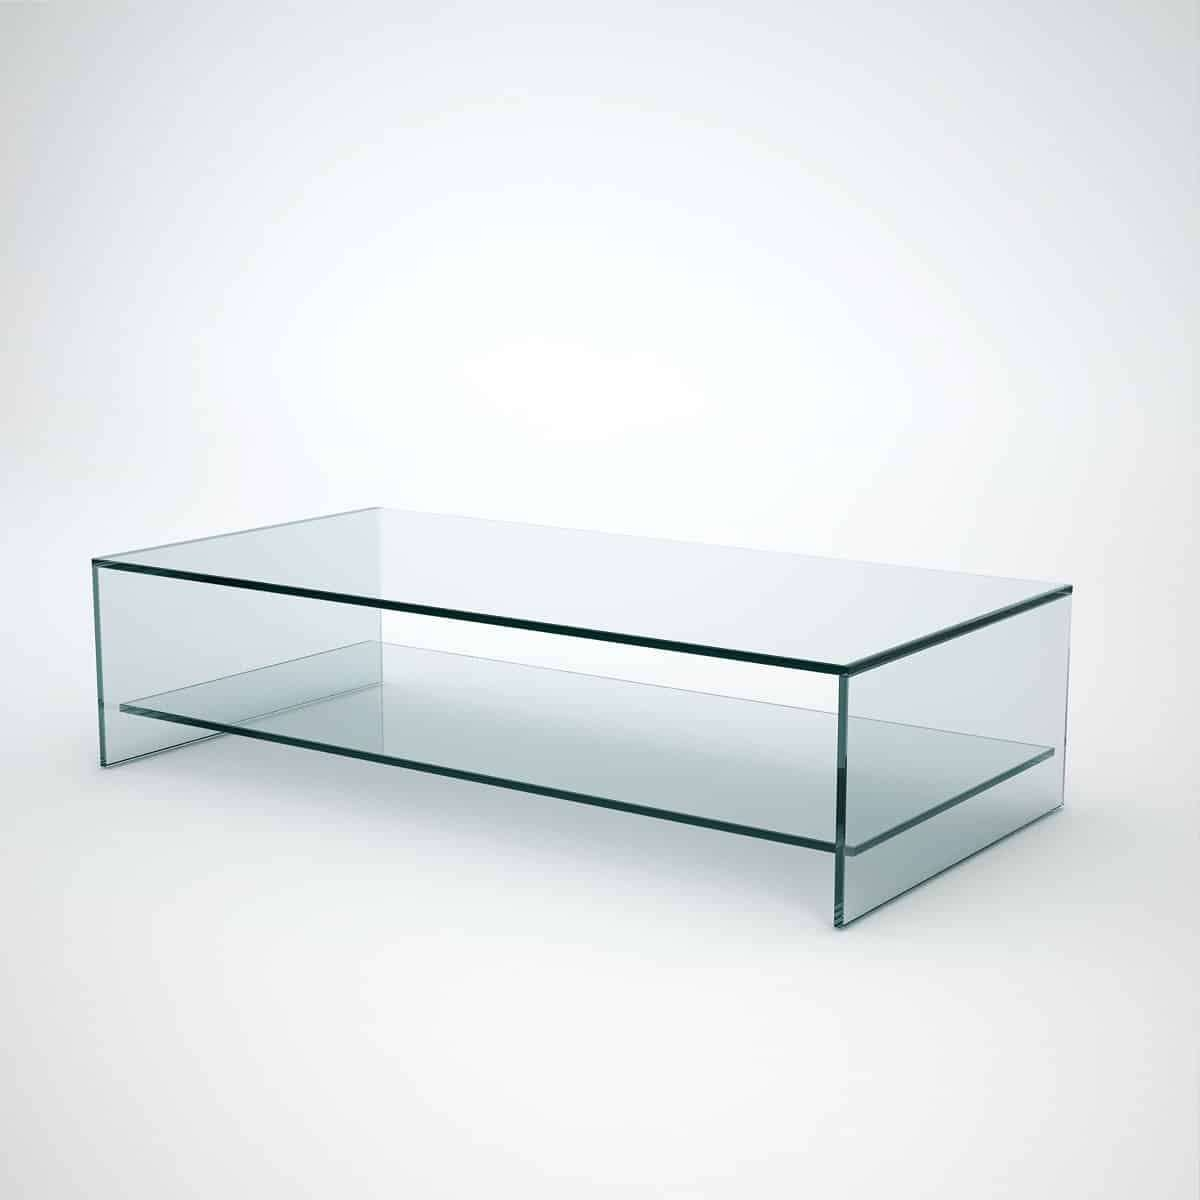 Judd – Rectangle Glass Coffee Table With Shelf – Klarity – Glass Intended For Current Glass Coffee Tables With Shelf (Gallery 1 of 20)